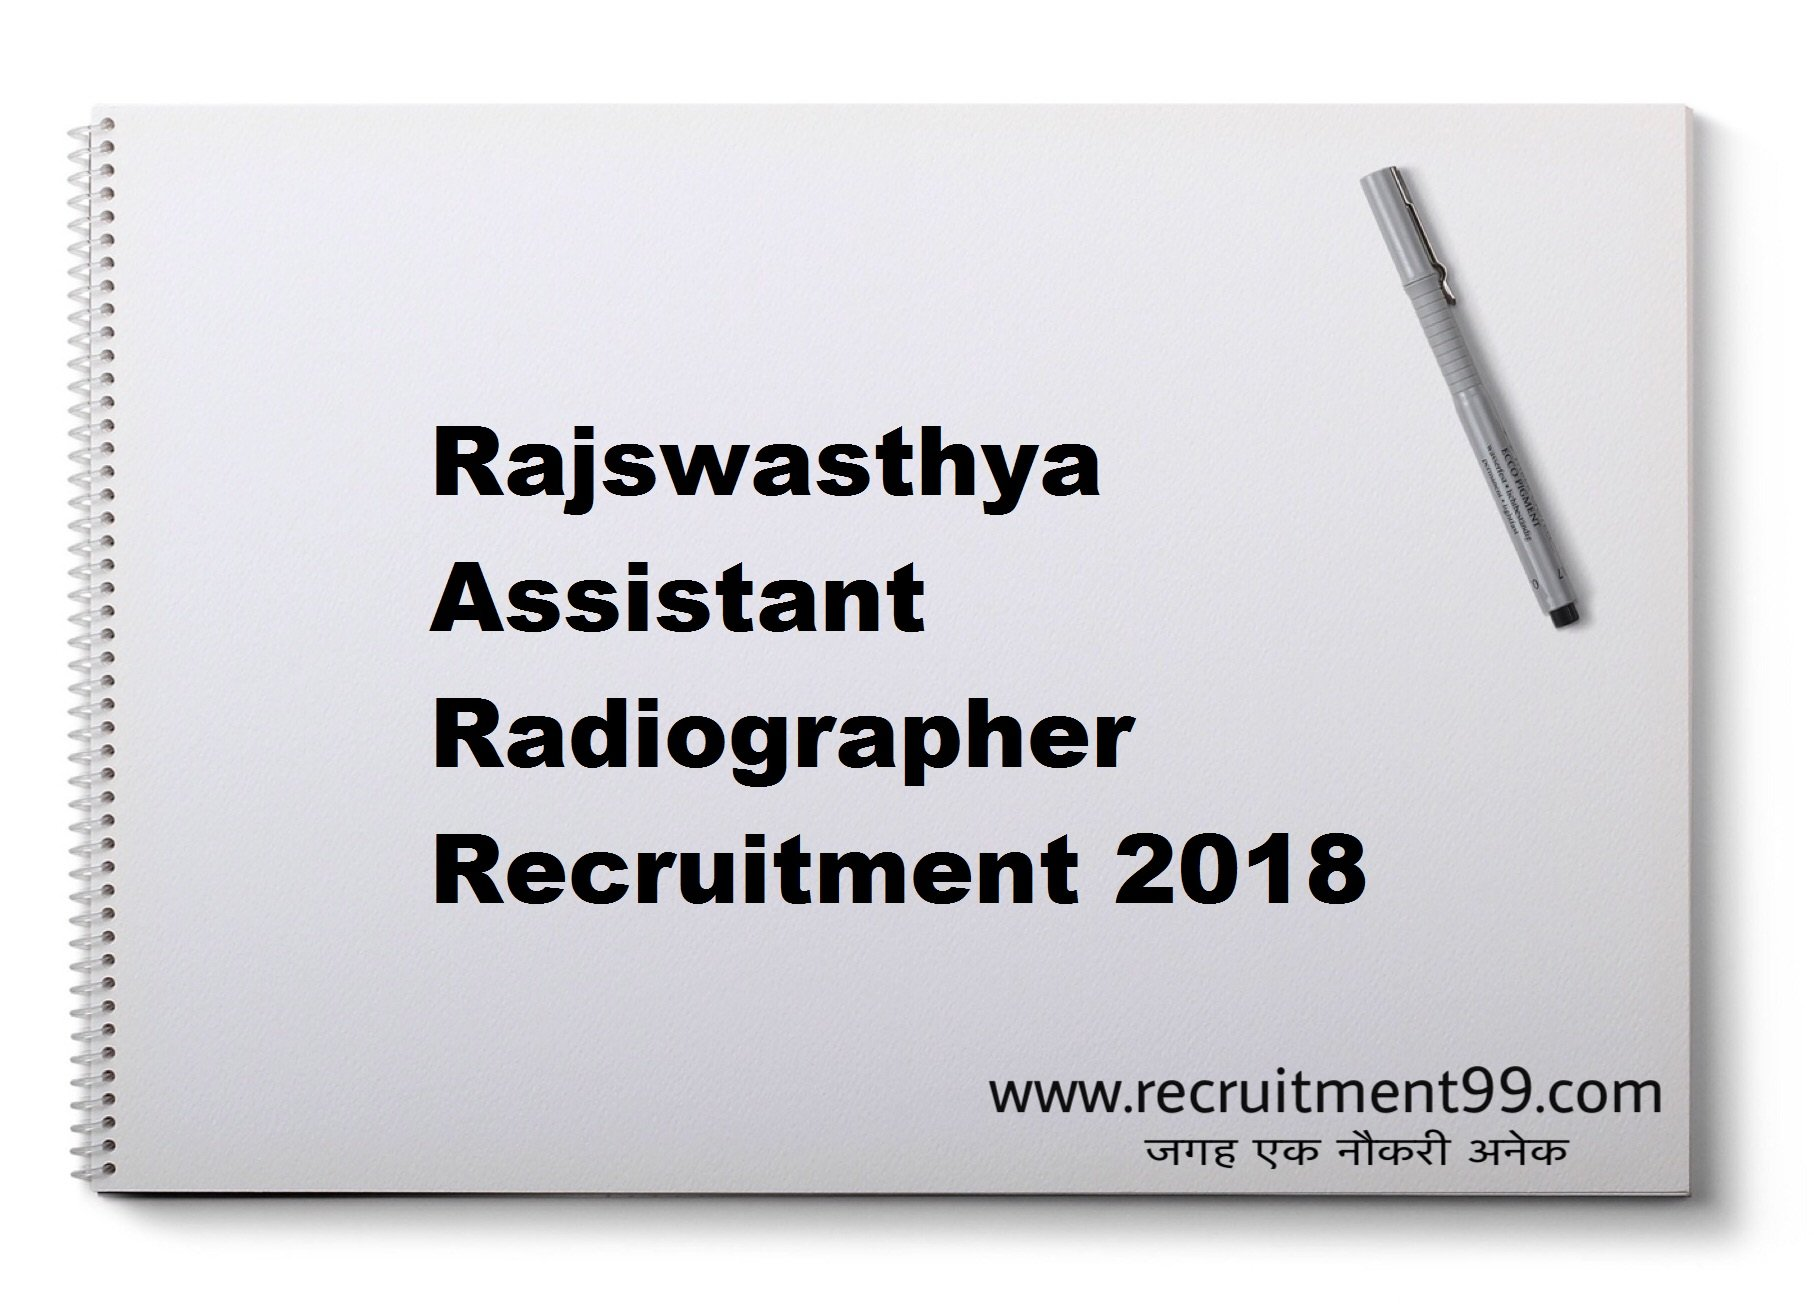 Rajswasthya Assistant Radiographer Recruitment Admit Card Result 2018